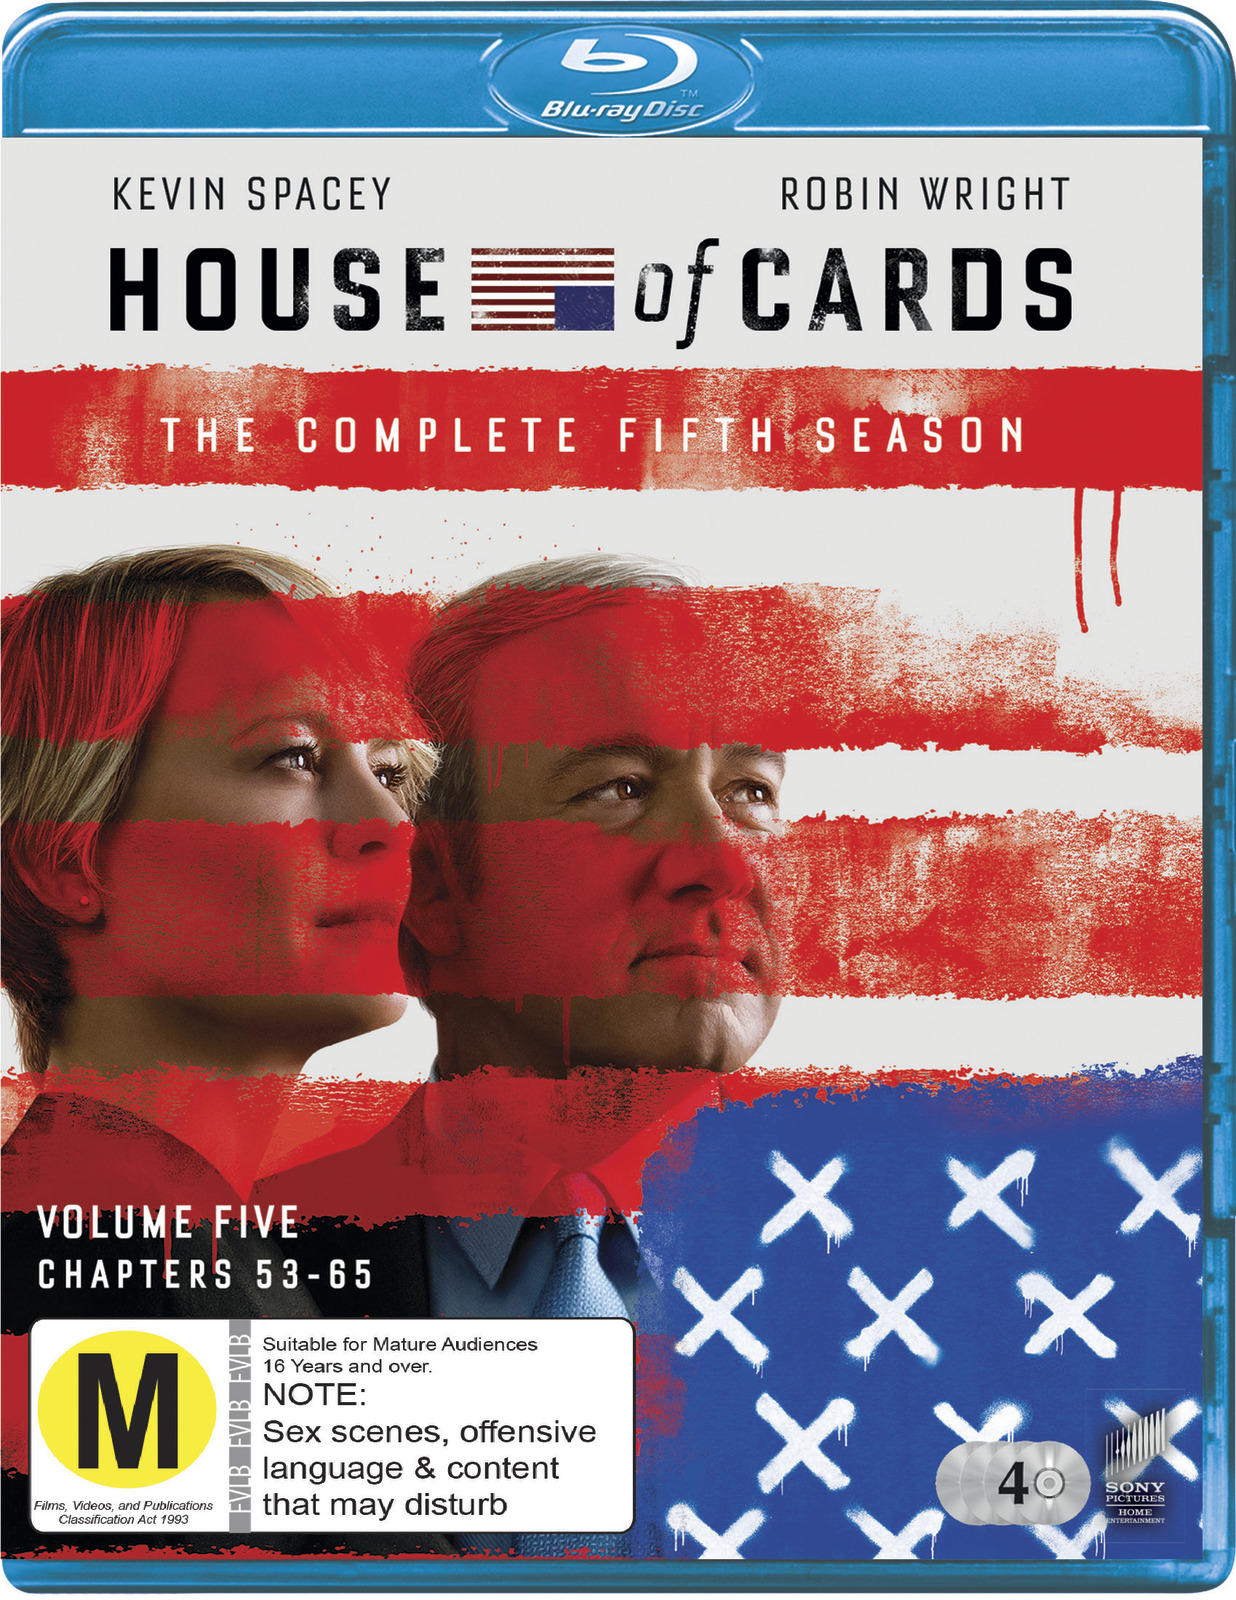 House of Cards - The Complete Fifth Season on Blu-ray image